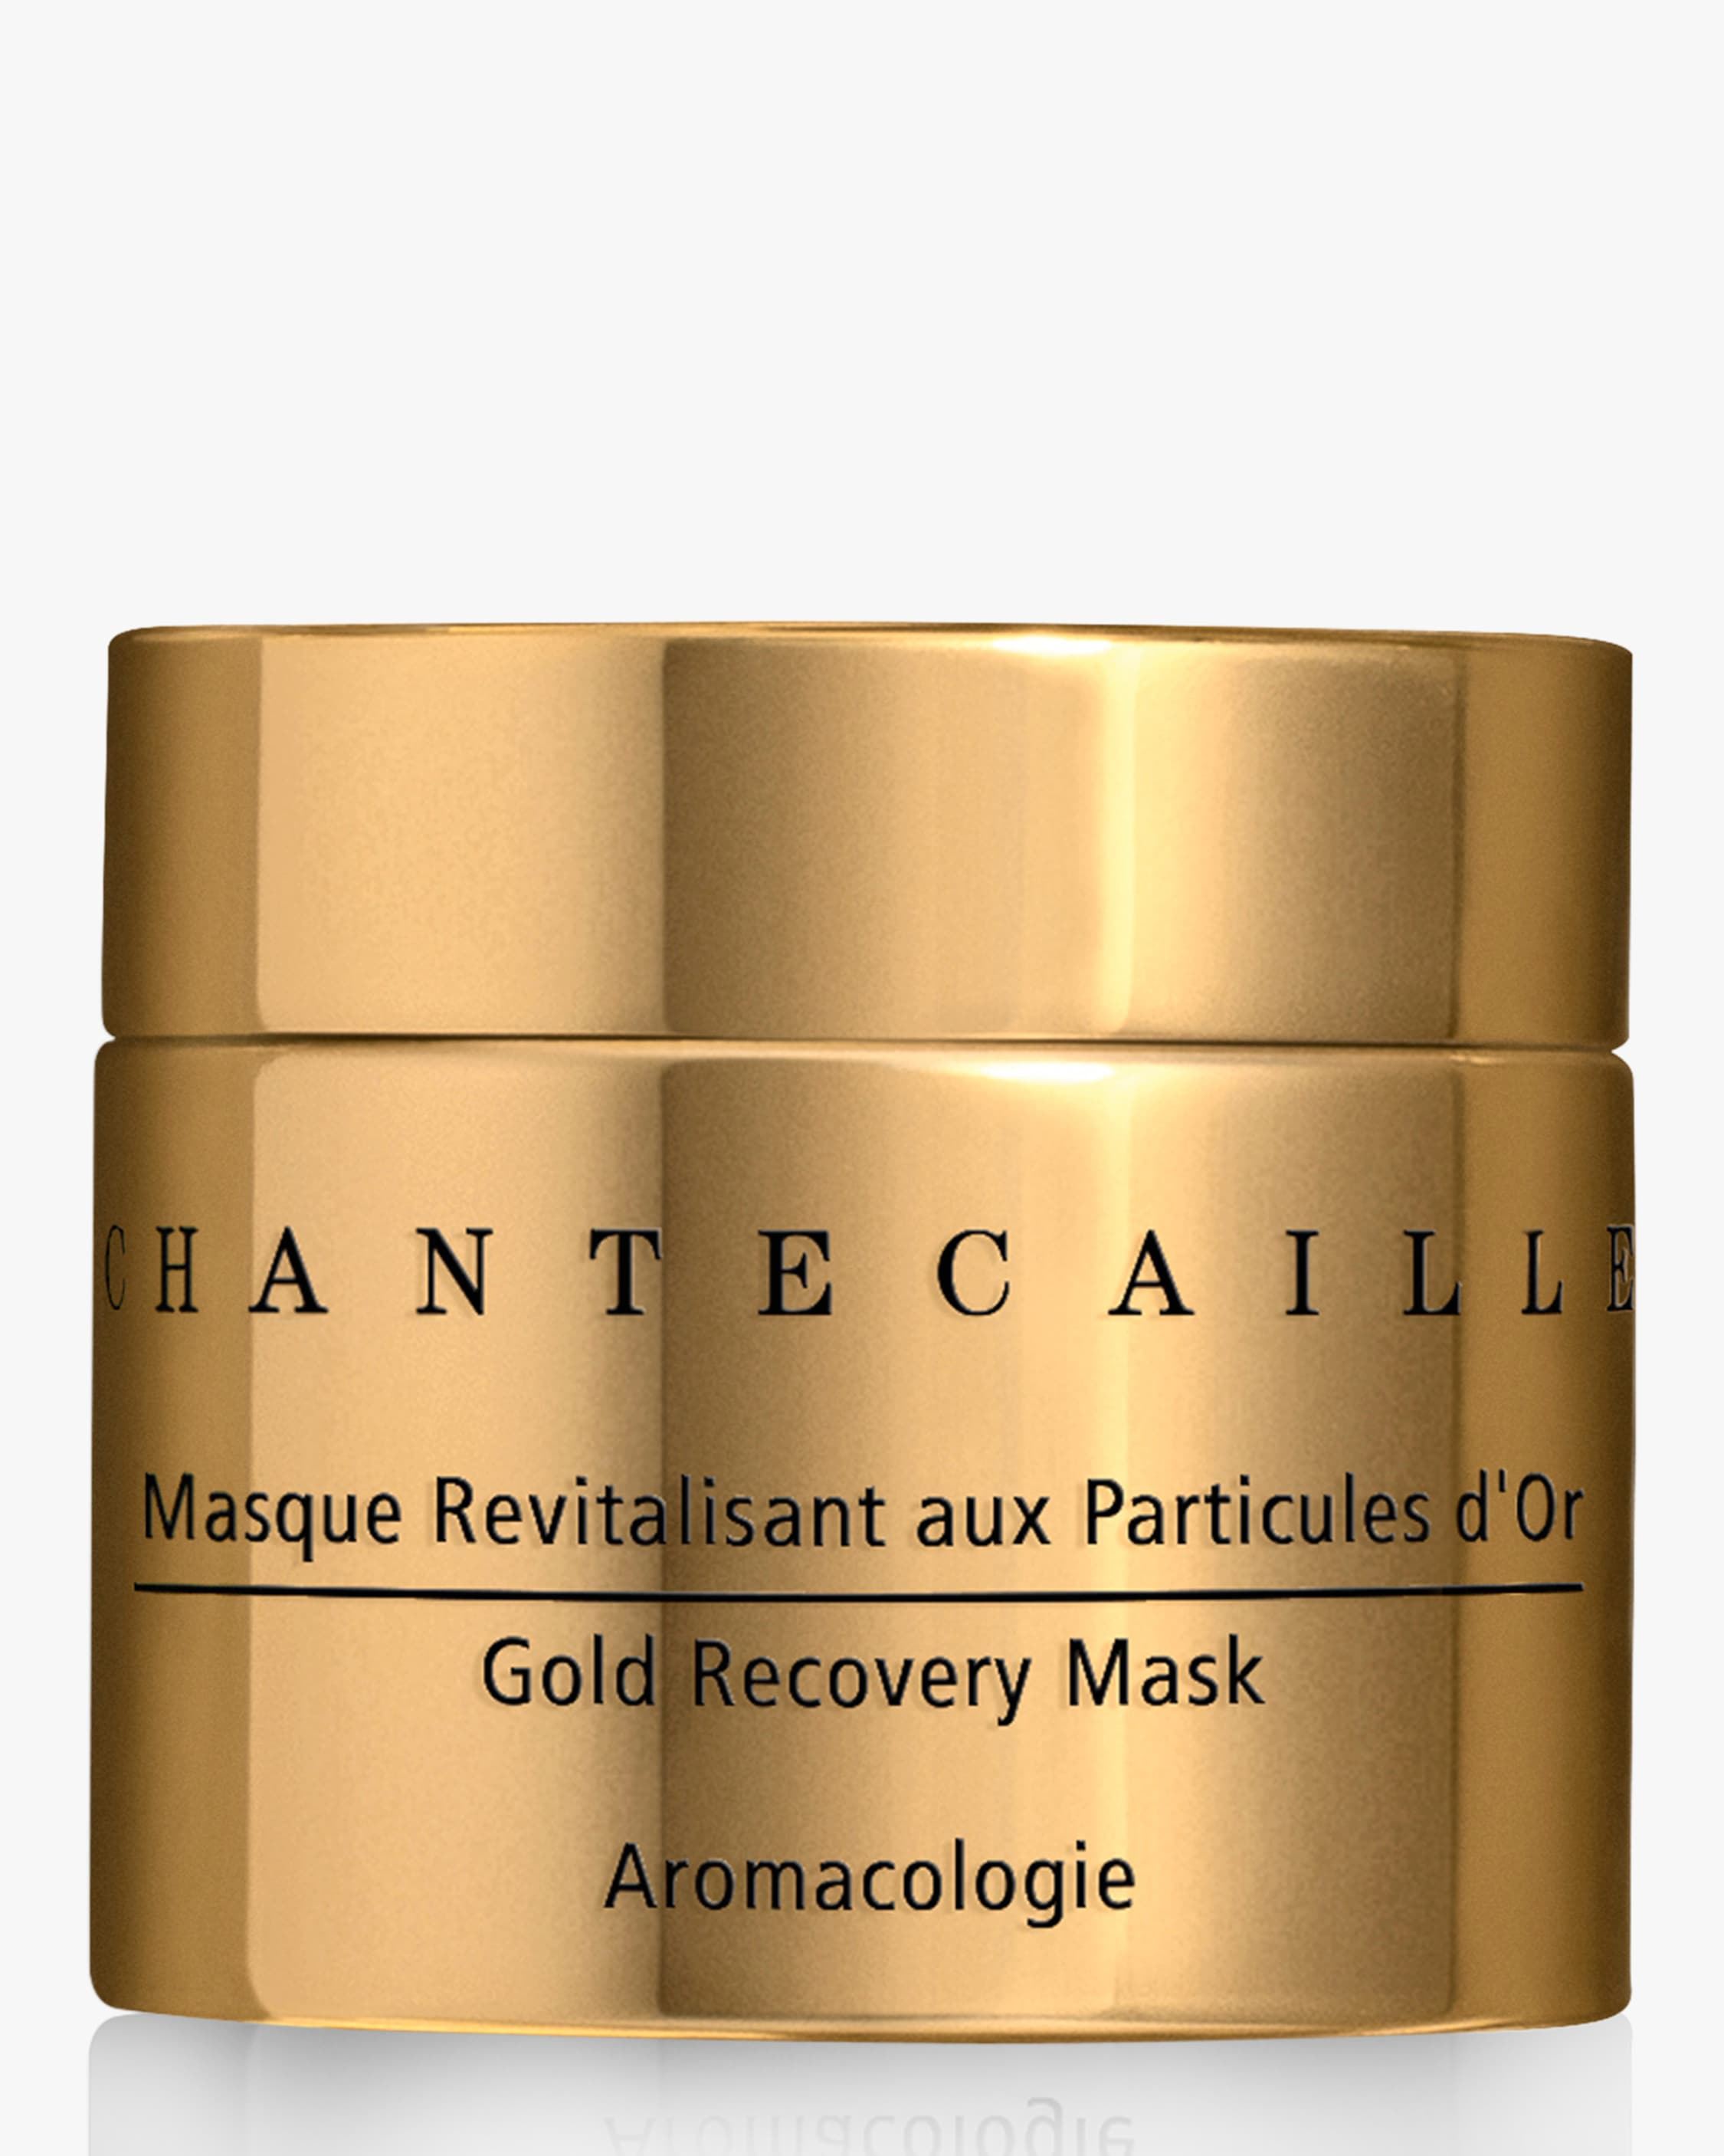 Chantecaille Gold Recovery Mask 50ml 2